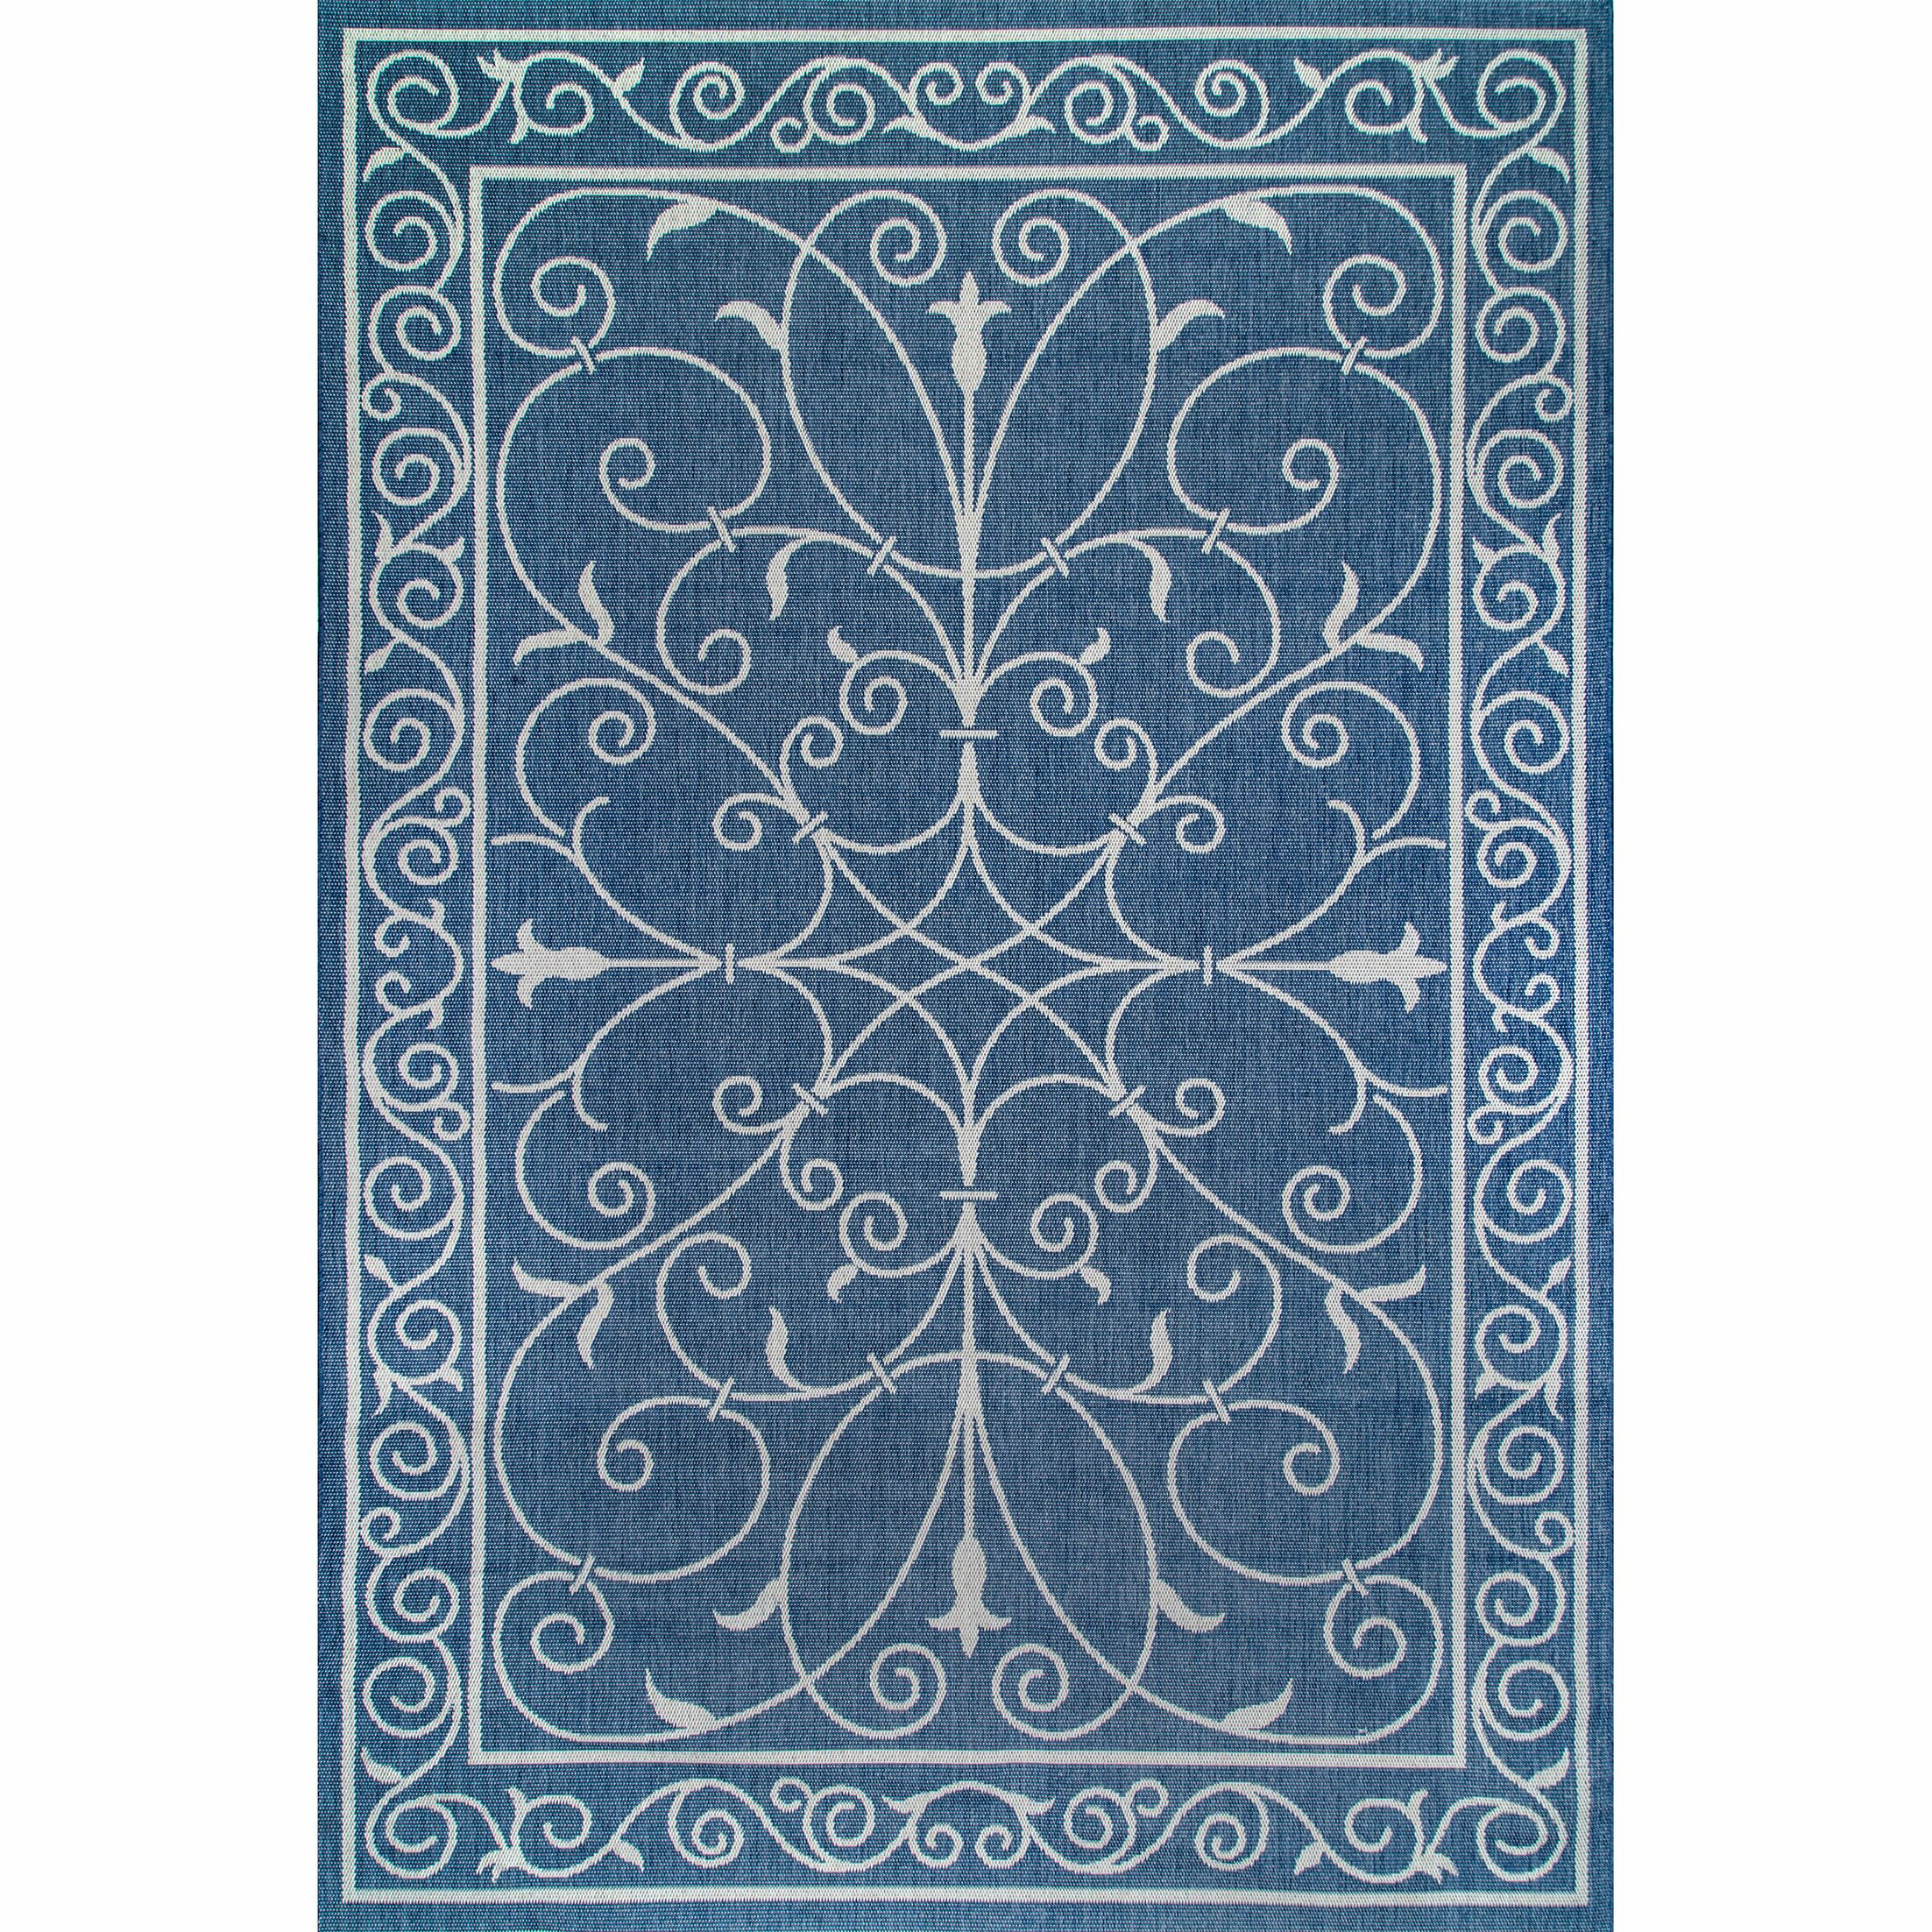 Mikhail Blue Outdoor Area Rug Rug Size: Rectangle 7'6